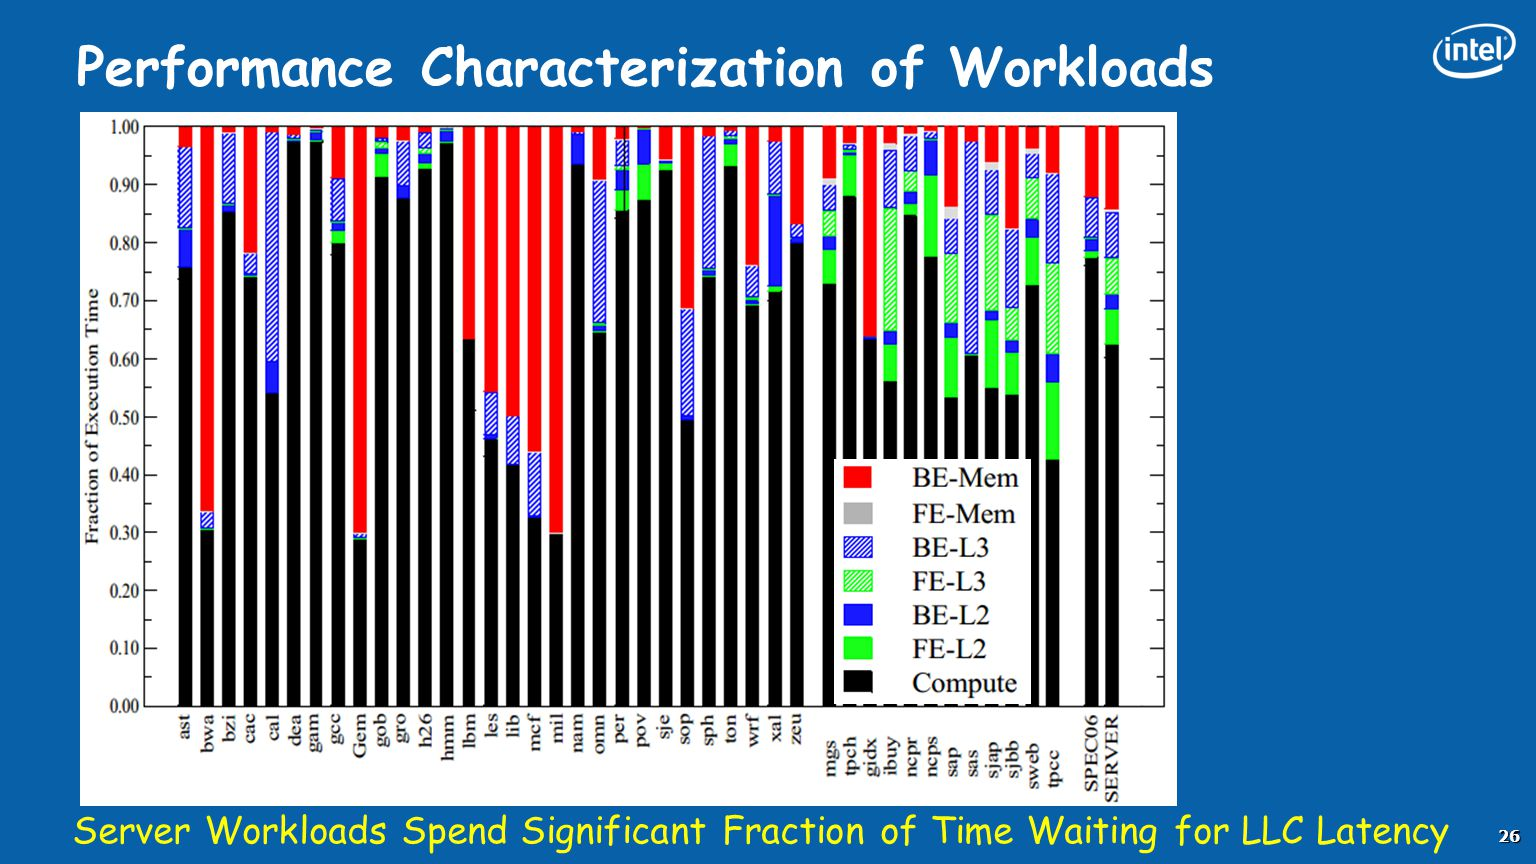 Performance Characterization of Workloads Server Workloads Spend Significant Fraction of Time Waiting for LLC Latency 26